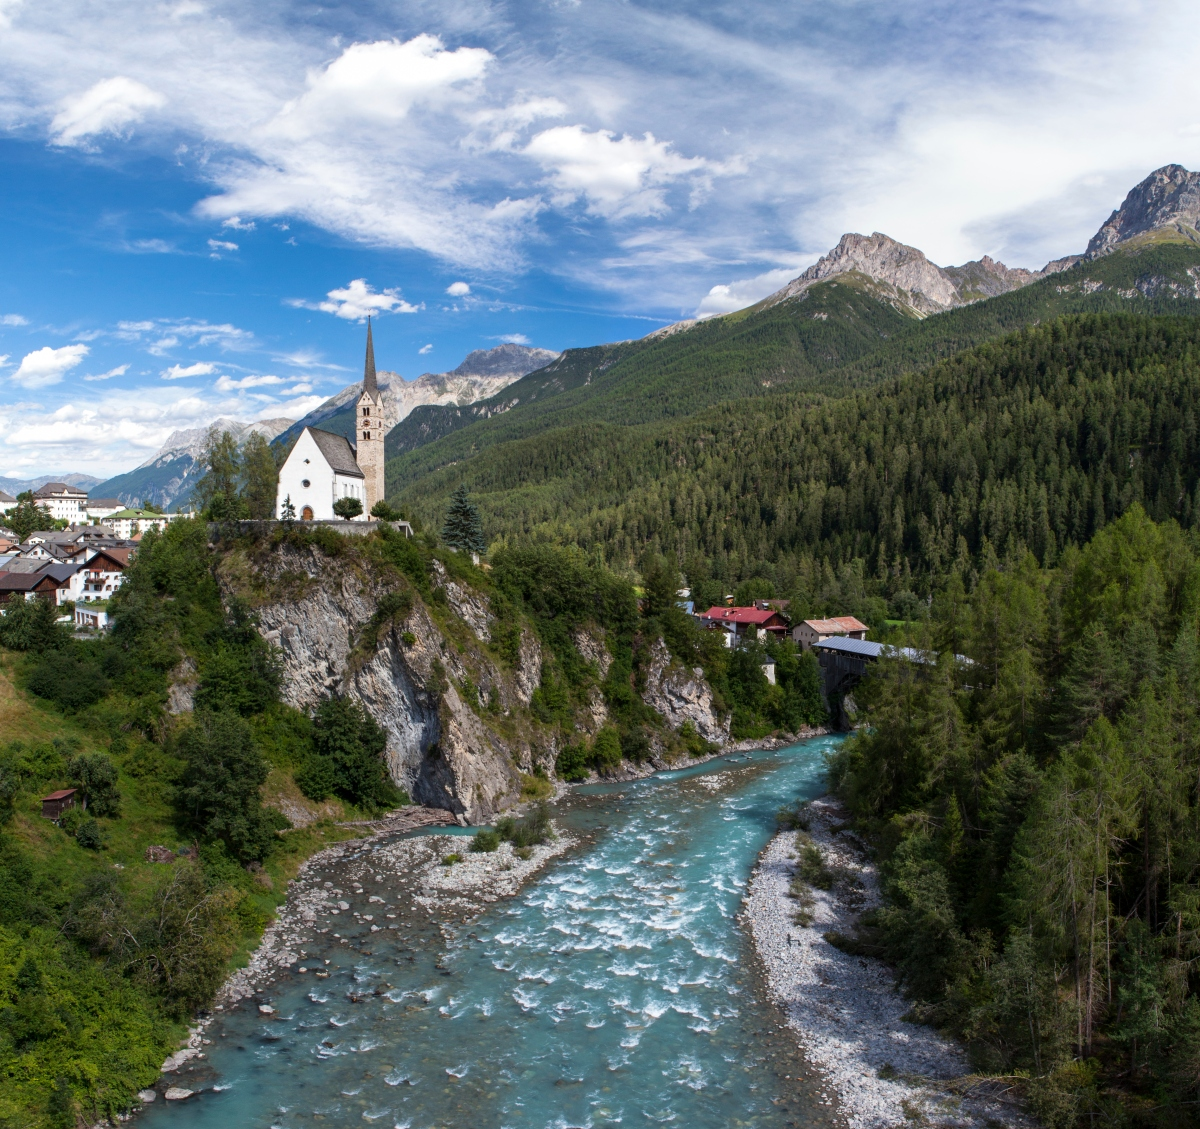 Town of Scuol